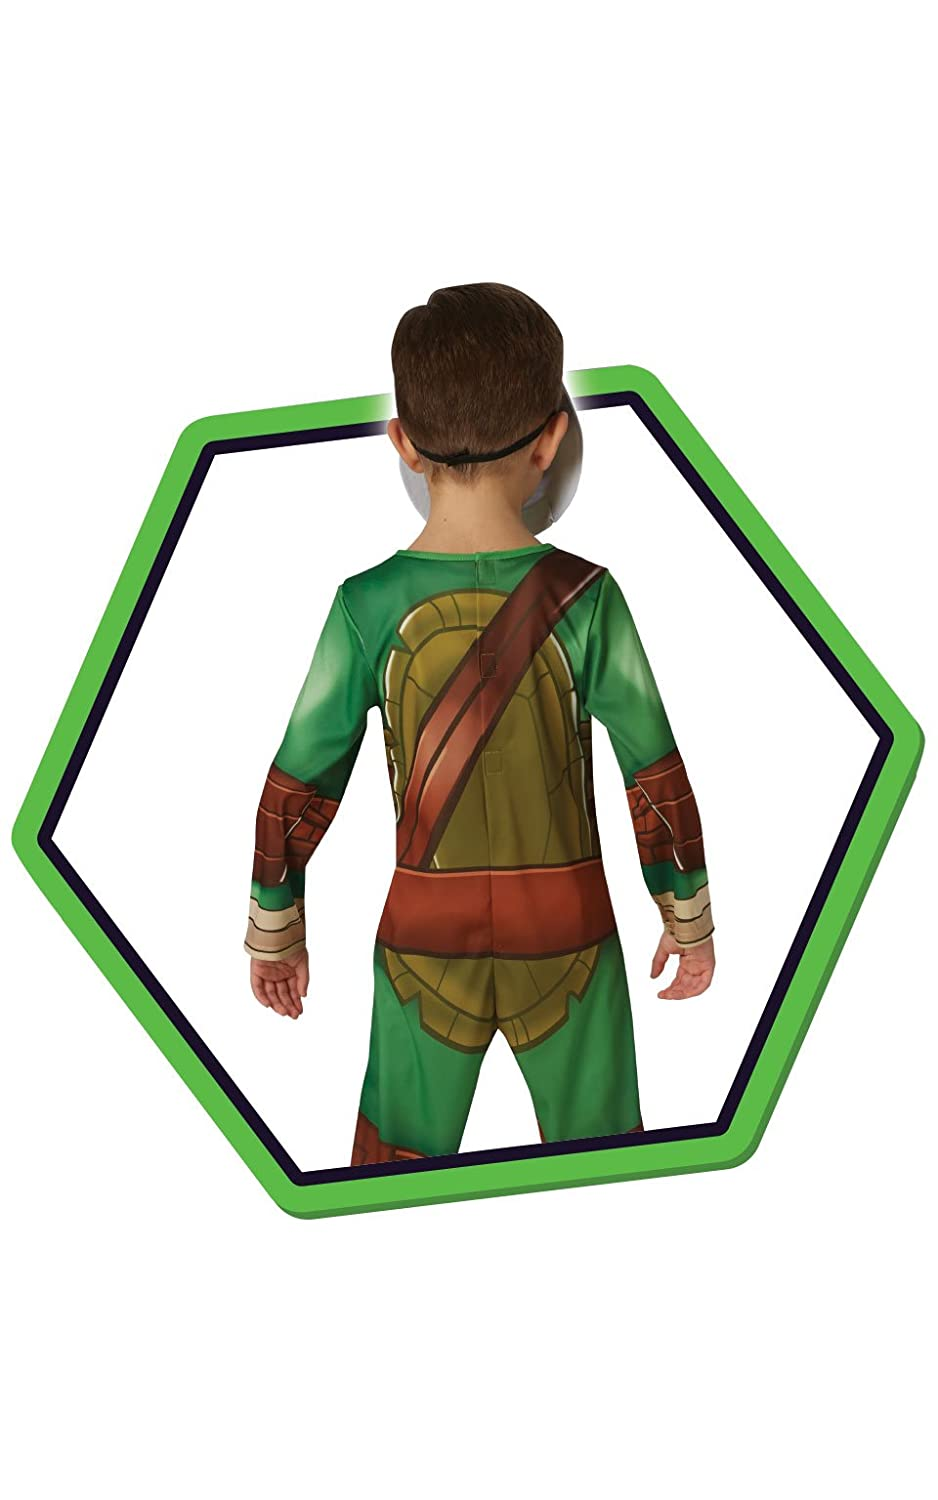 Rubies s Official TMNT Half Shell Hero Teenage Mutant Ninja Turtles, disfraz para niños – tamaño mediano